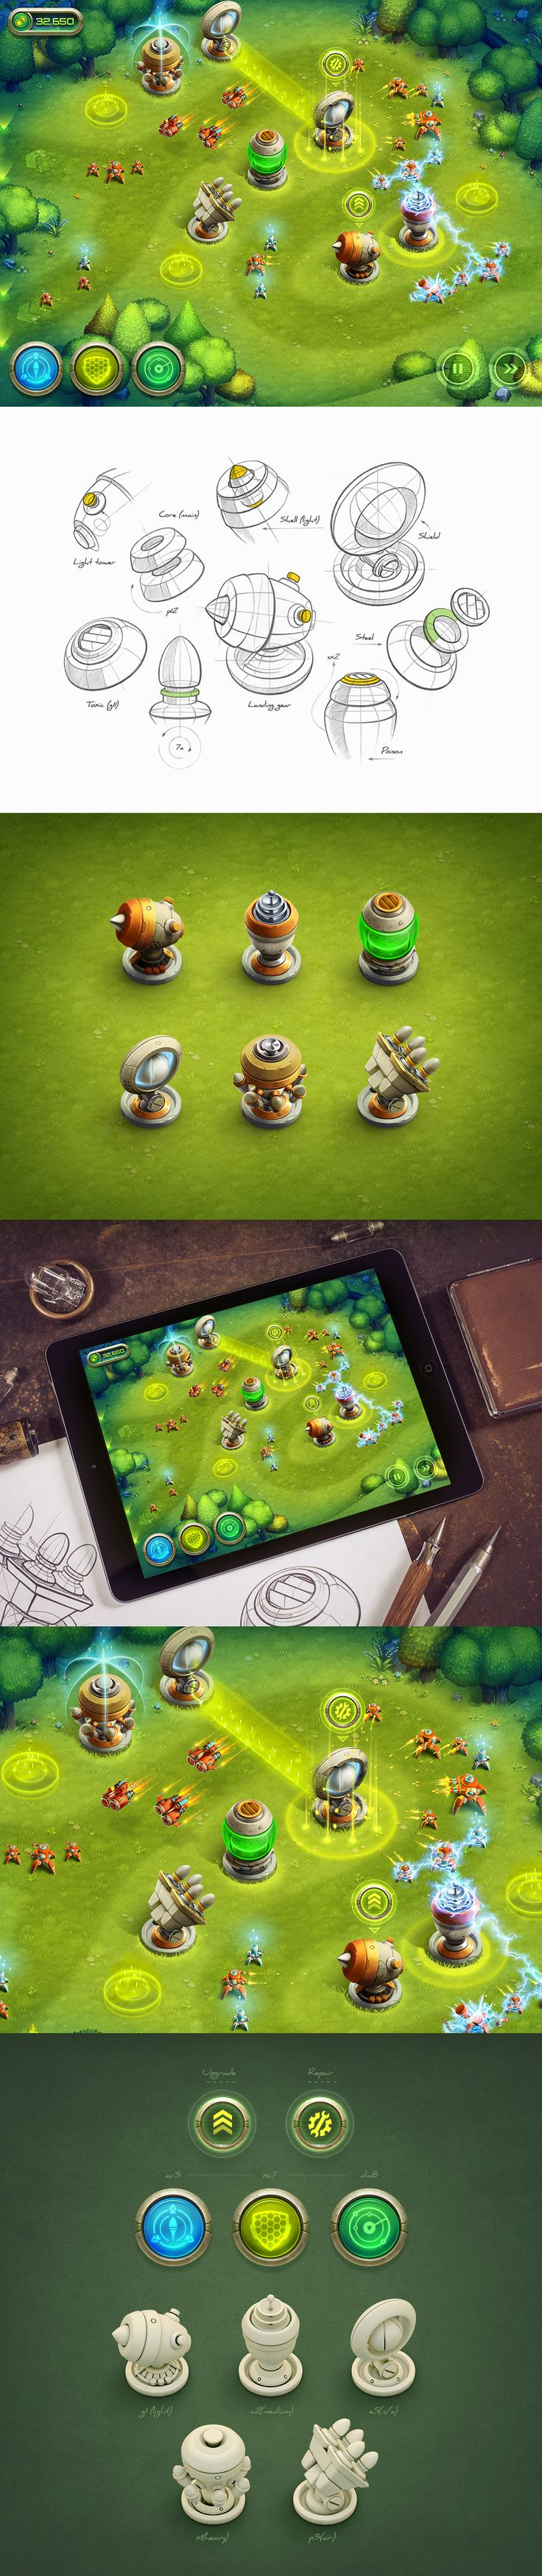 Tower defence ios game